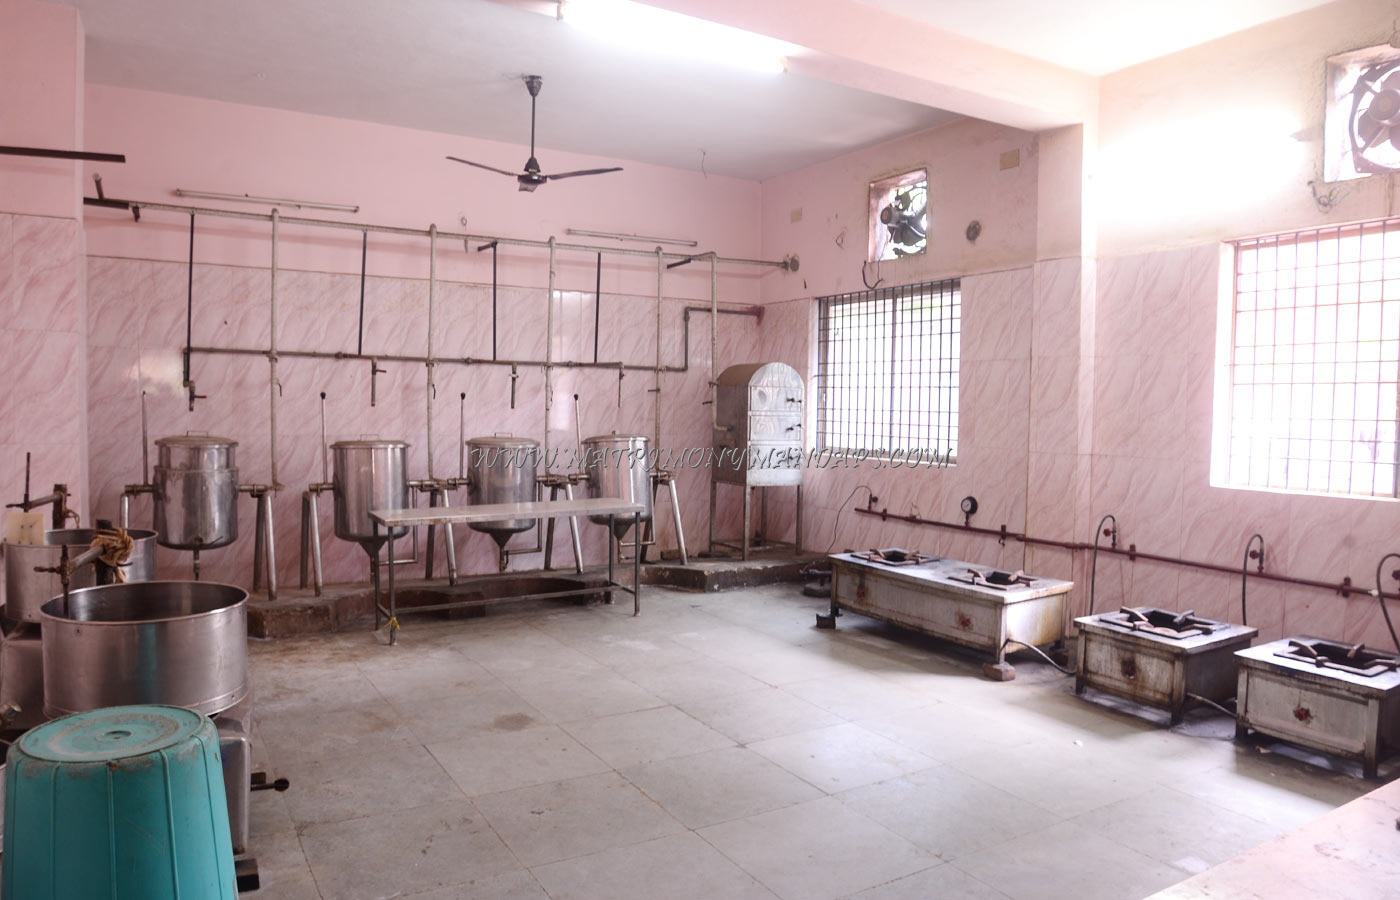 Find the availability of the PJN Mahal (A/C) in Porur, Chennai and avail special offers